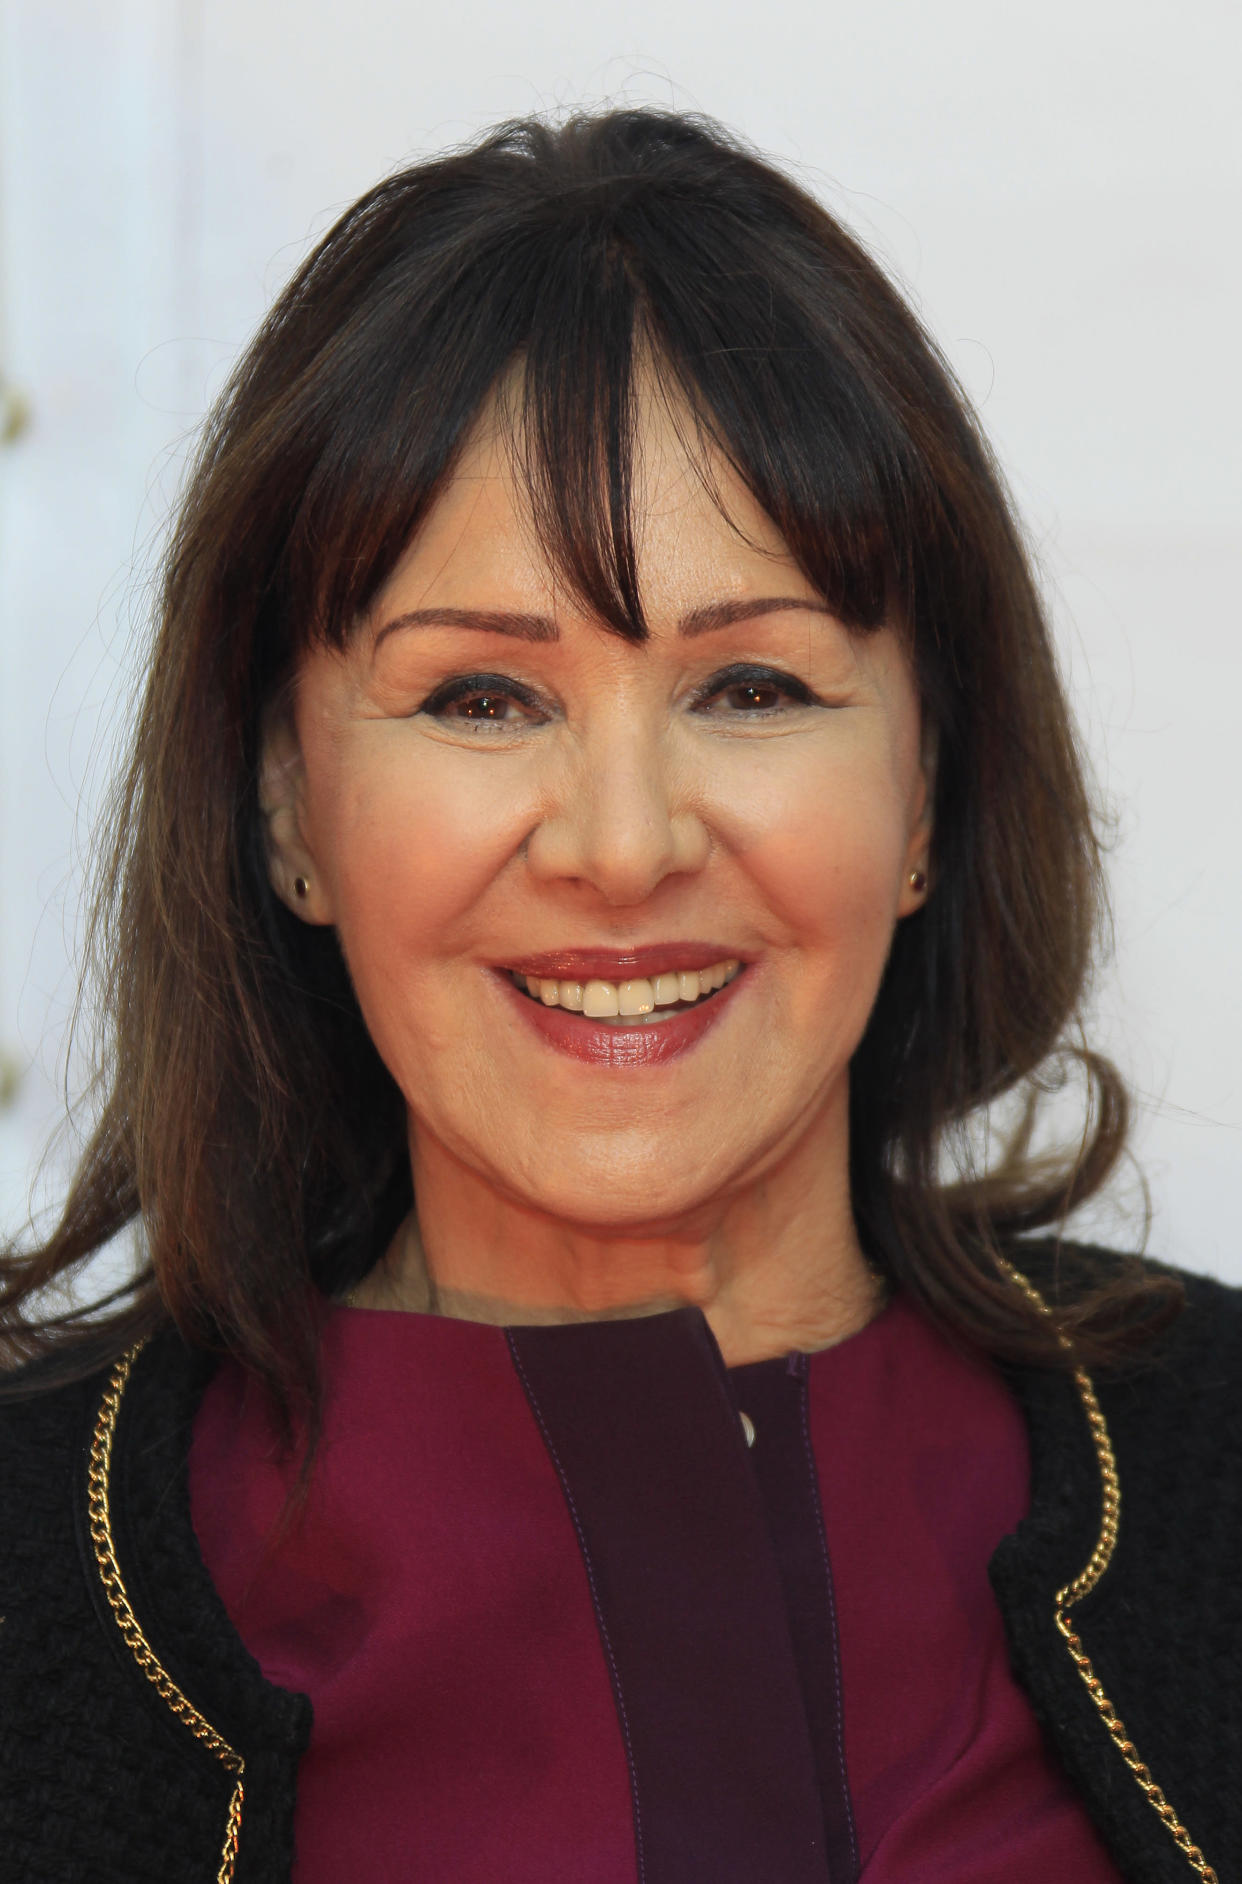 Arlene Phillips arrives for the European Premiere of the latest Cirque Du Soleil show Kooza, at the Royal Albert Hall in central London, Tuesday, Jan. 8, 2013. (Photo by Joel Ryan/Invision/AP)